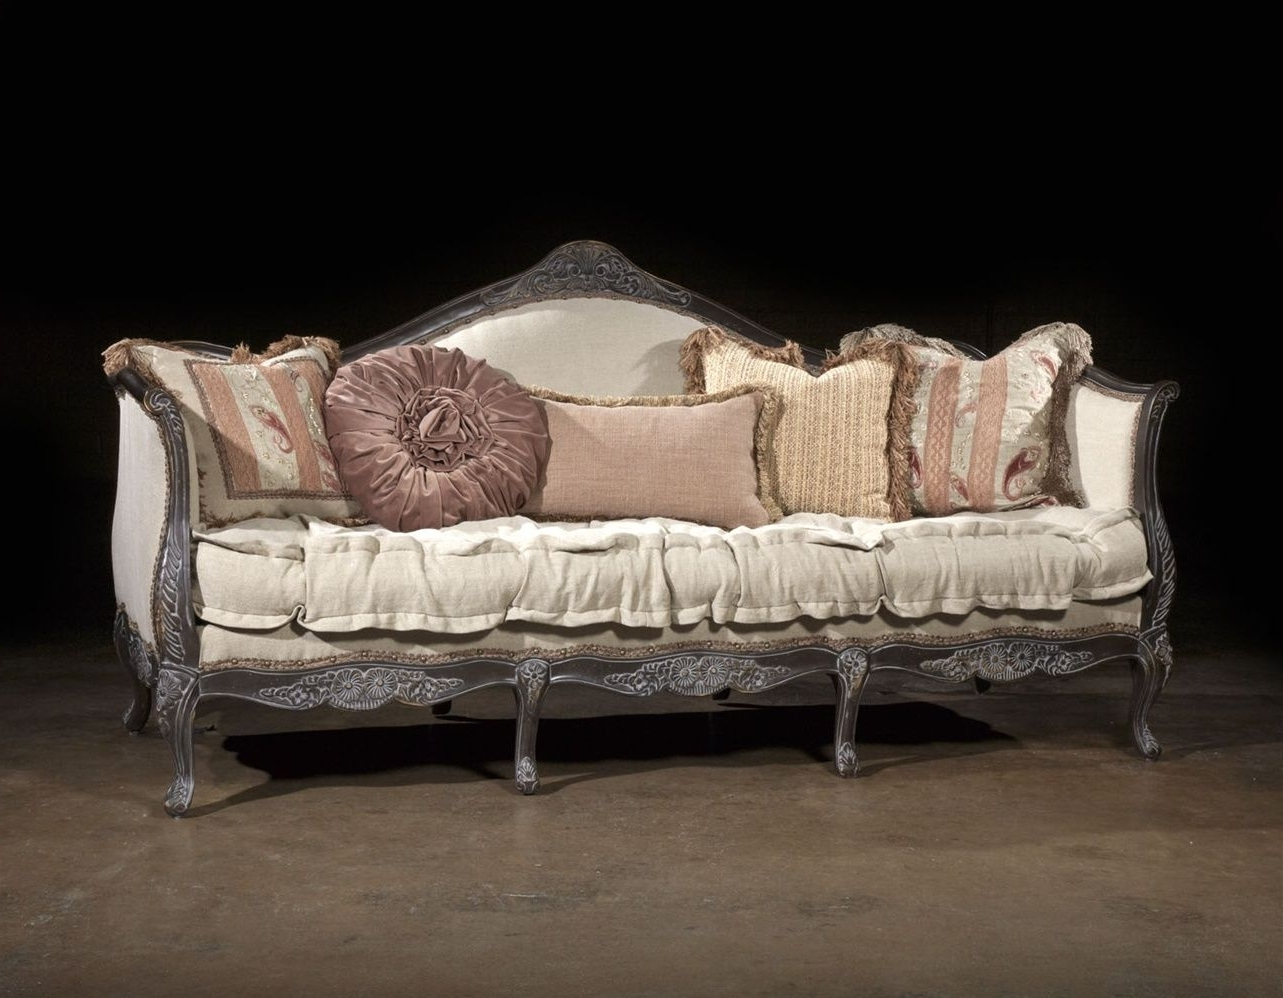 2018 French Style Sofas Within Google Image Result For Http://a248.e (View 16 of 20)